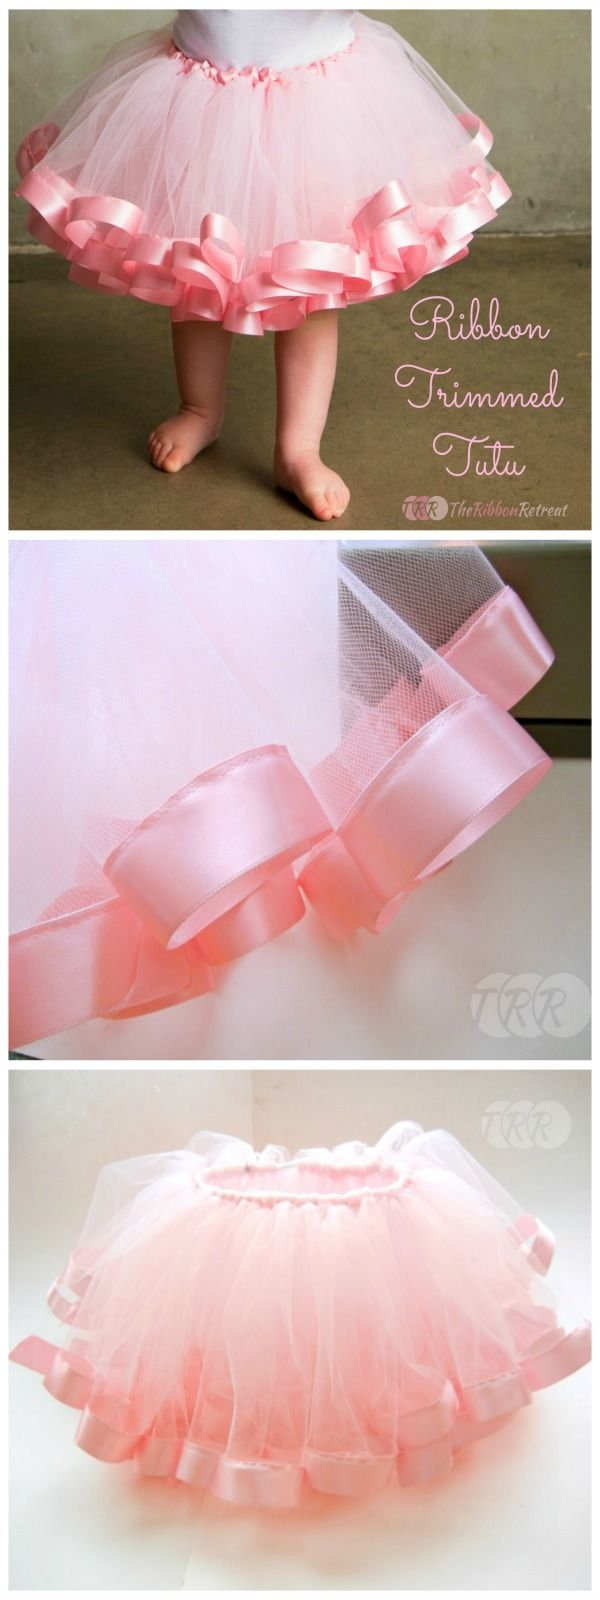 Goodness, is this cute! Ribbon Trimmed Tutu Tutorial - The Ribbon Retreat Blog